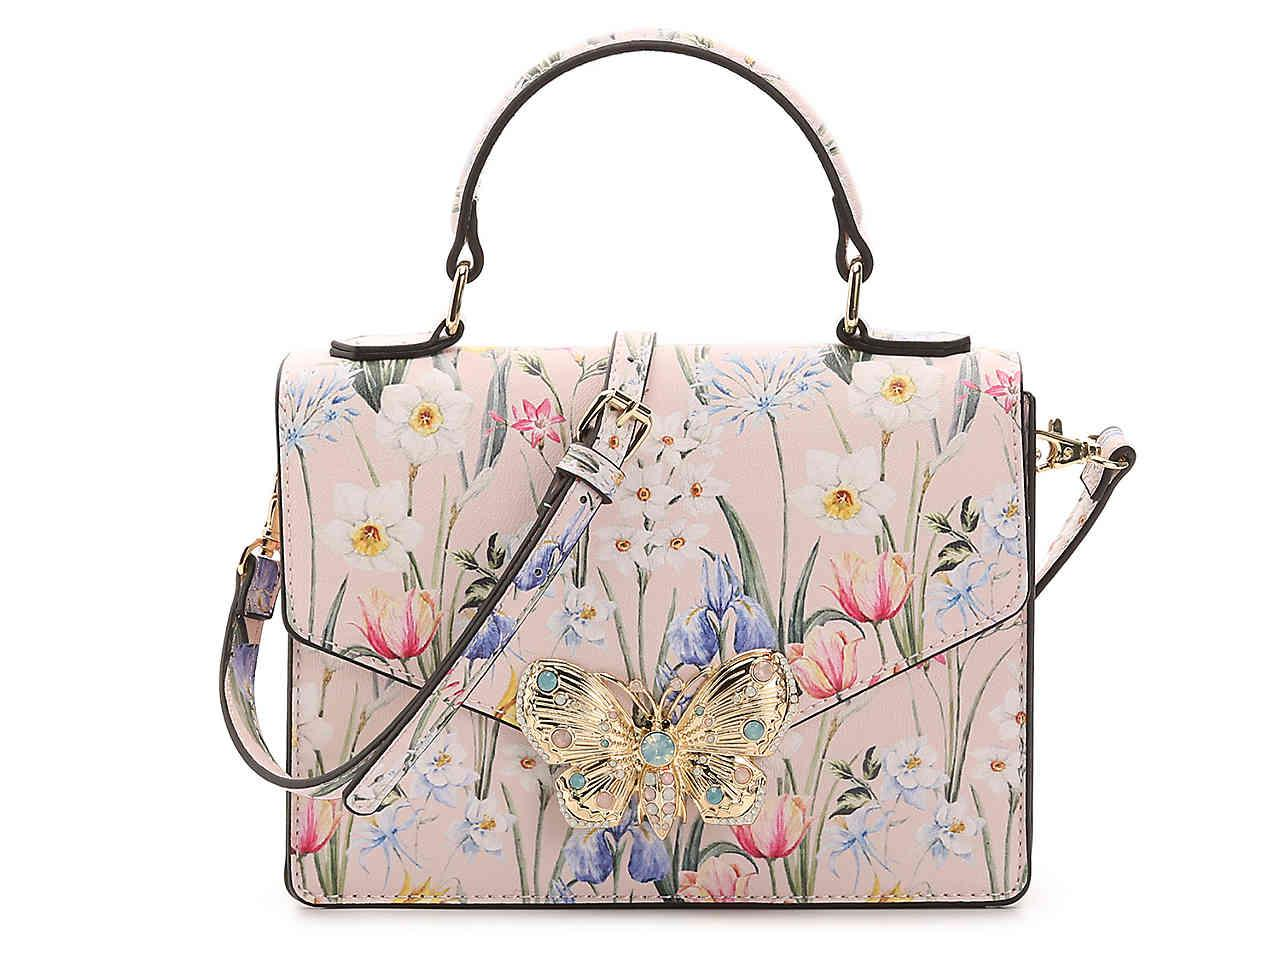 Erfly Purses And Handbags New Image Of Purse